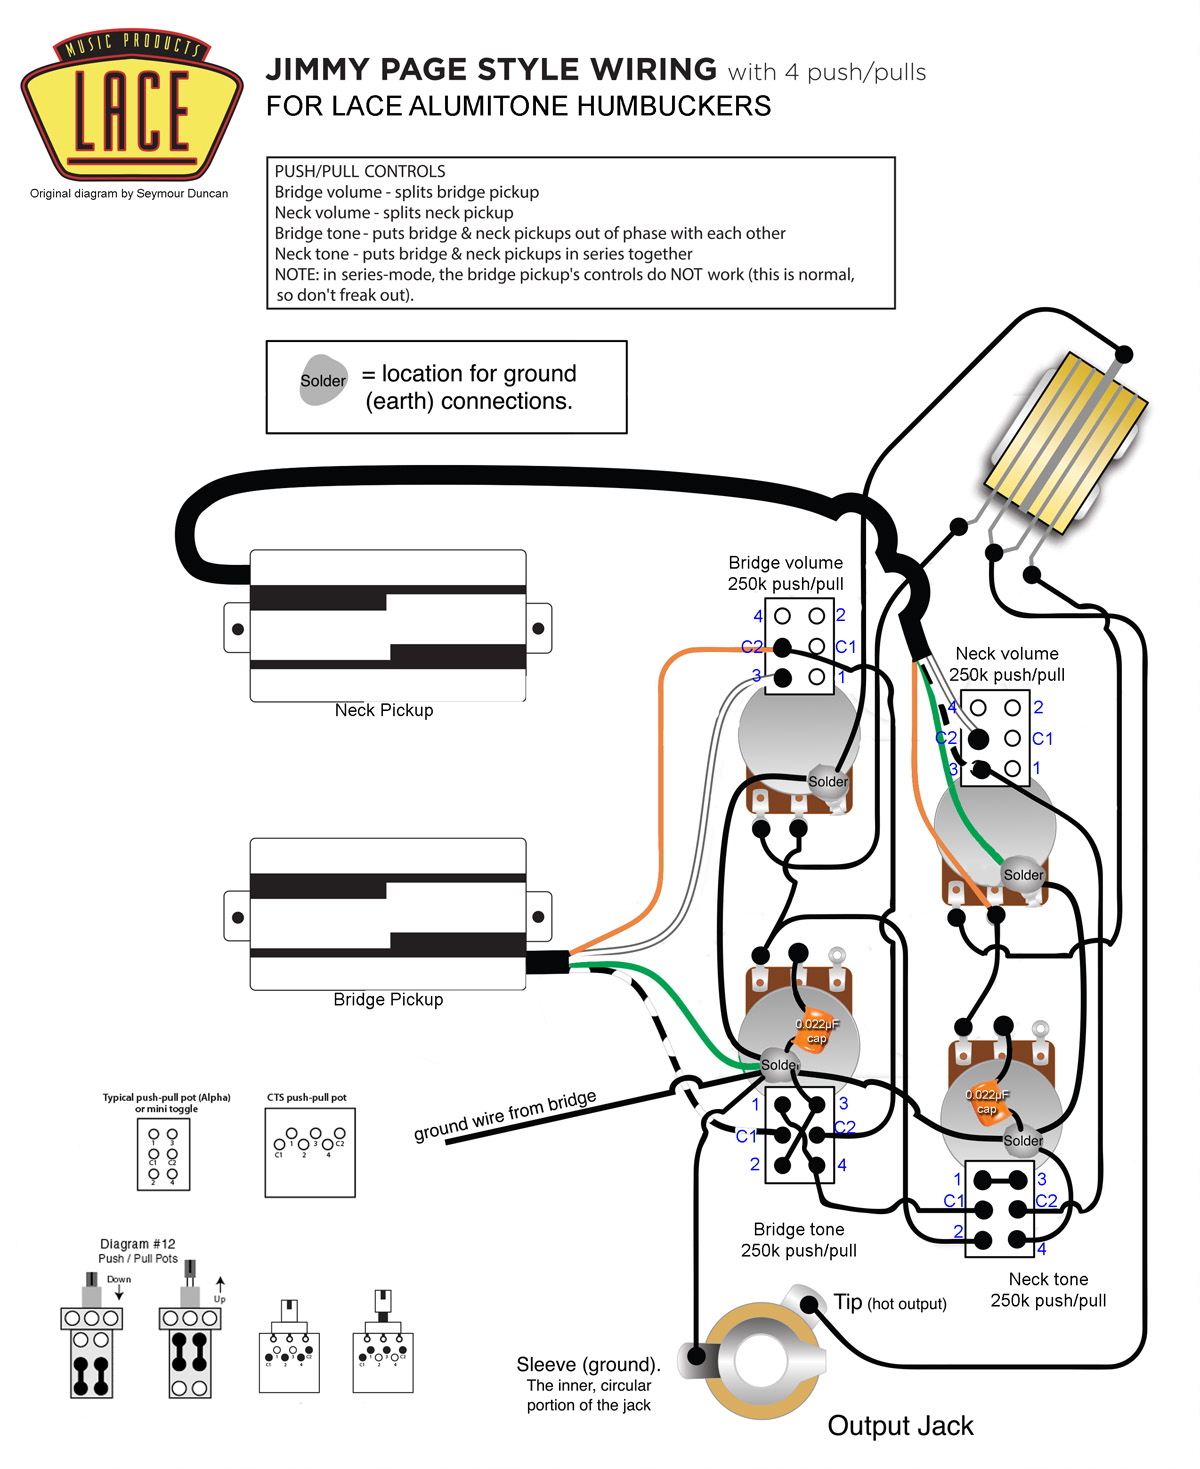 Jimmy Page Wiring Diagram | Wiring Diagram - Jimmy Page Wiring Diagram